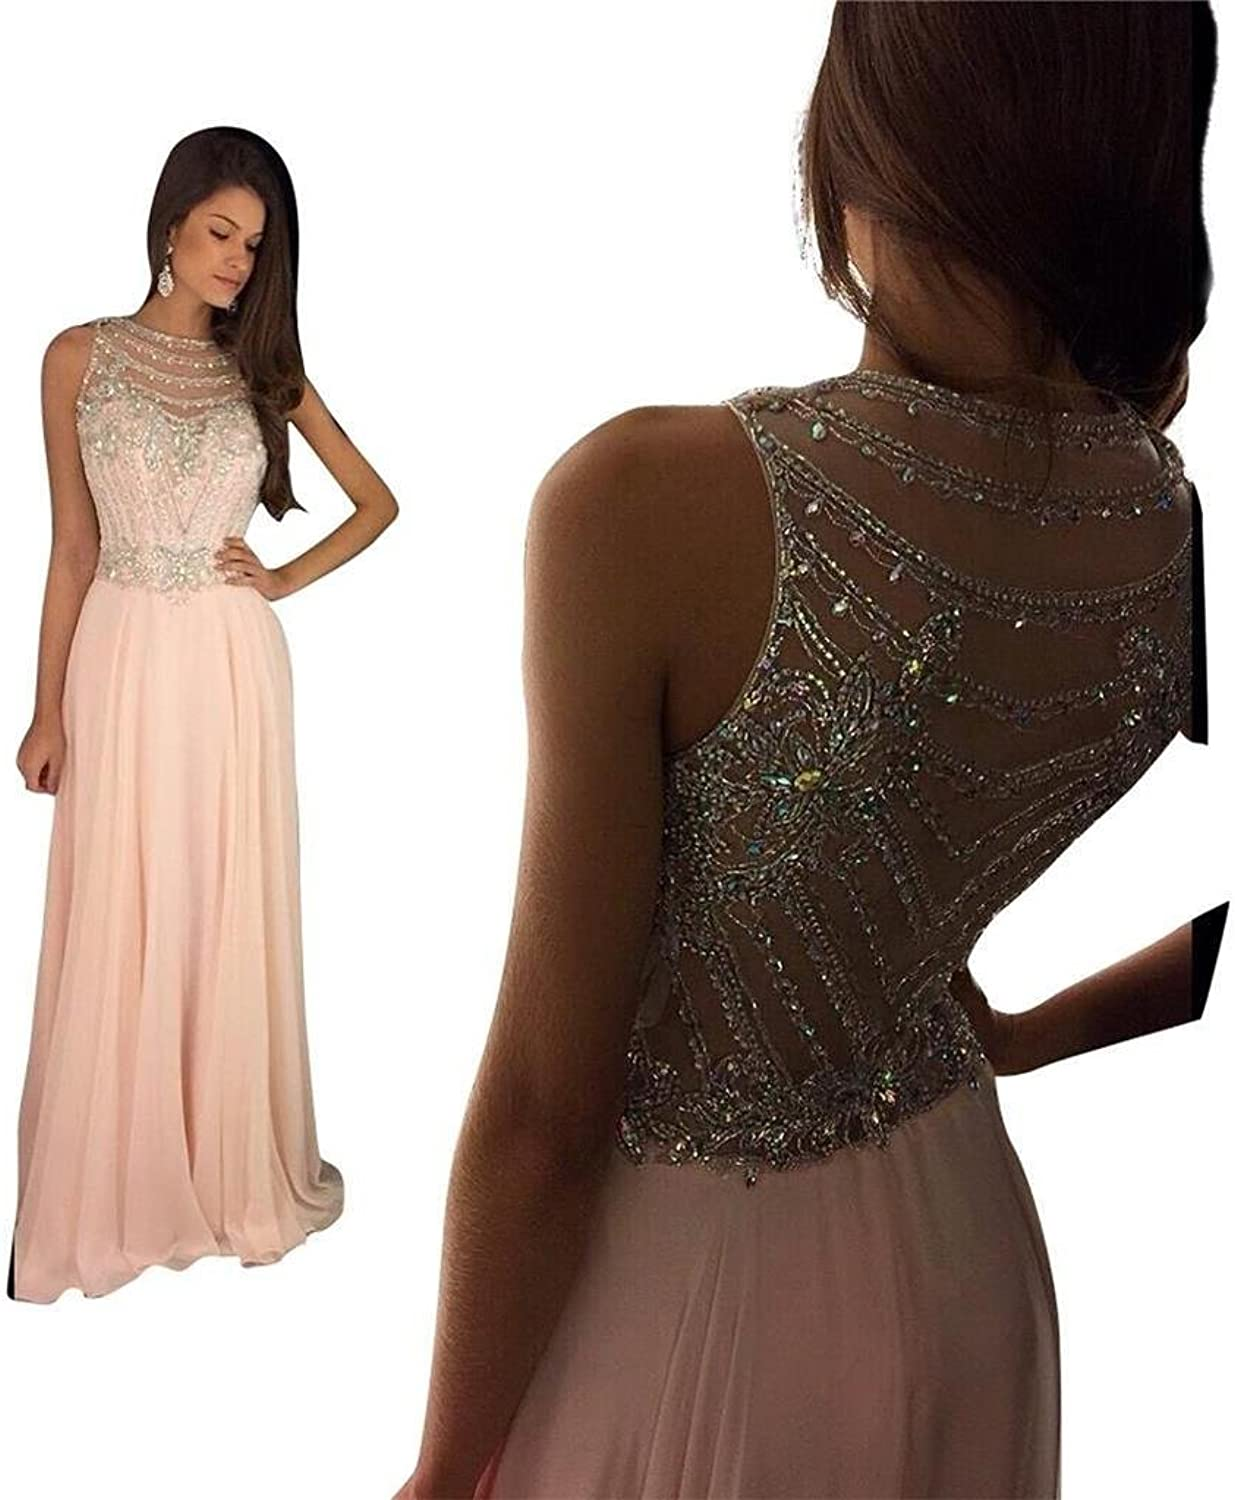 KISSBRIDAL Women's Pink Crystal Beaing Prom Dress Long Fitted Formal Evening Gown